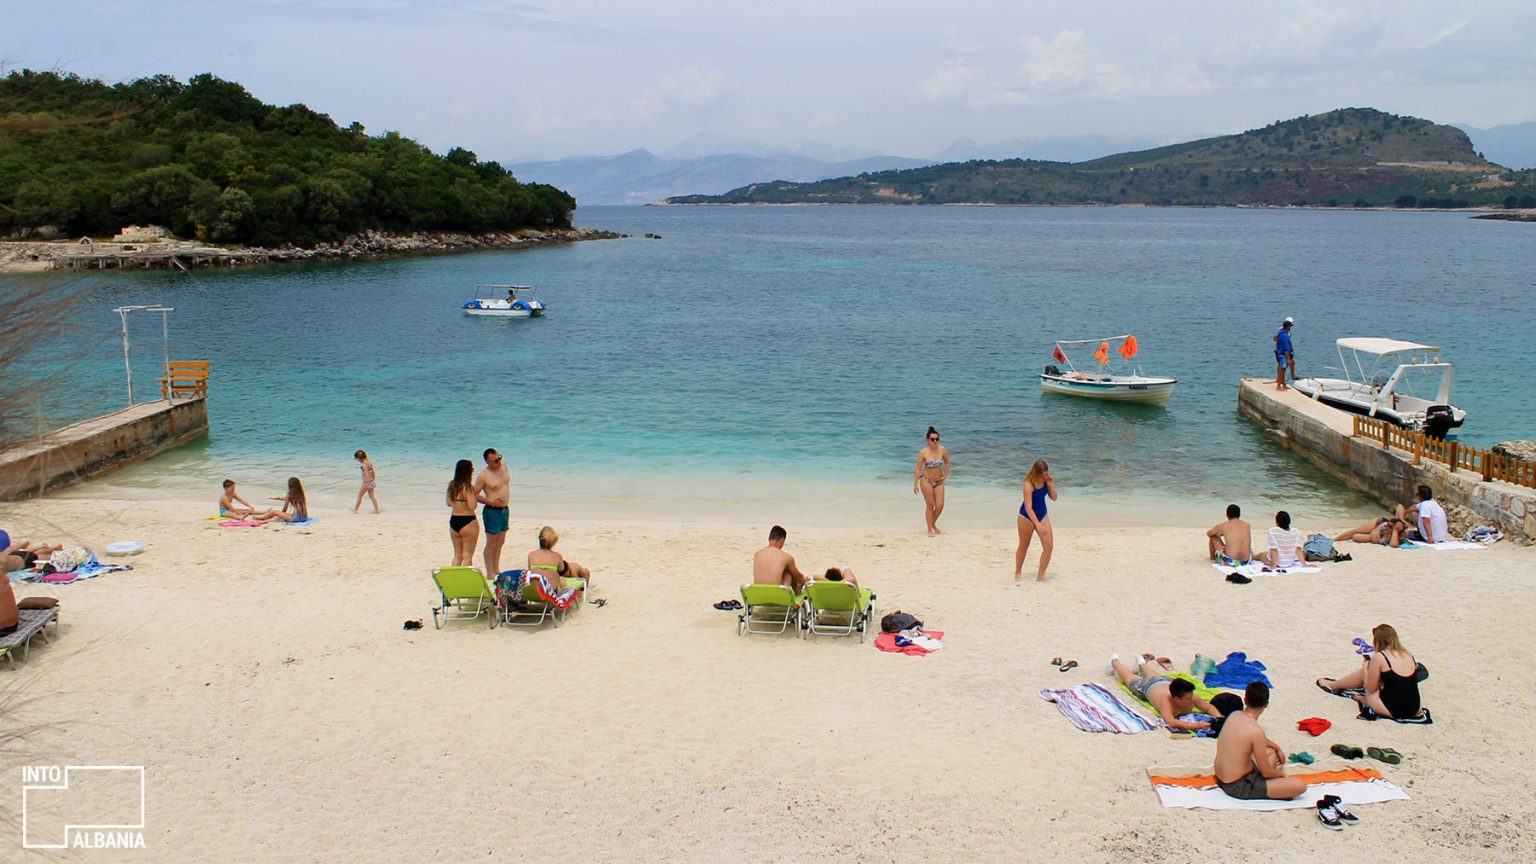 The Twin Islands of Ksamil, Saranda, photo by IntoAlbania